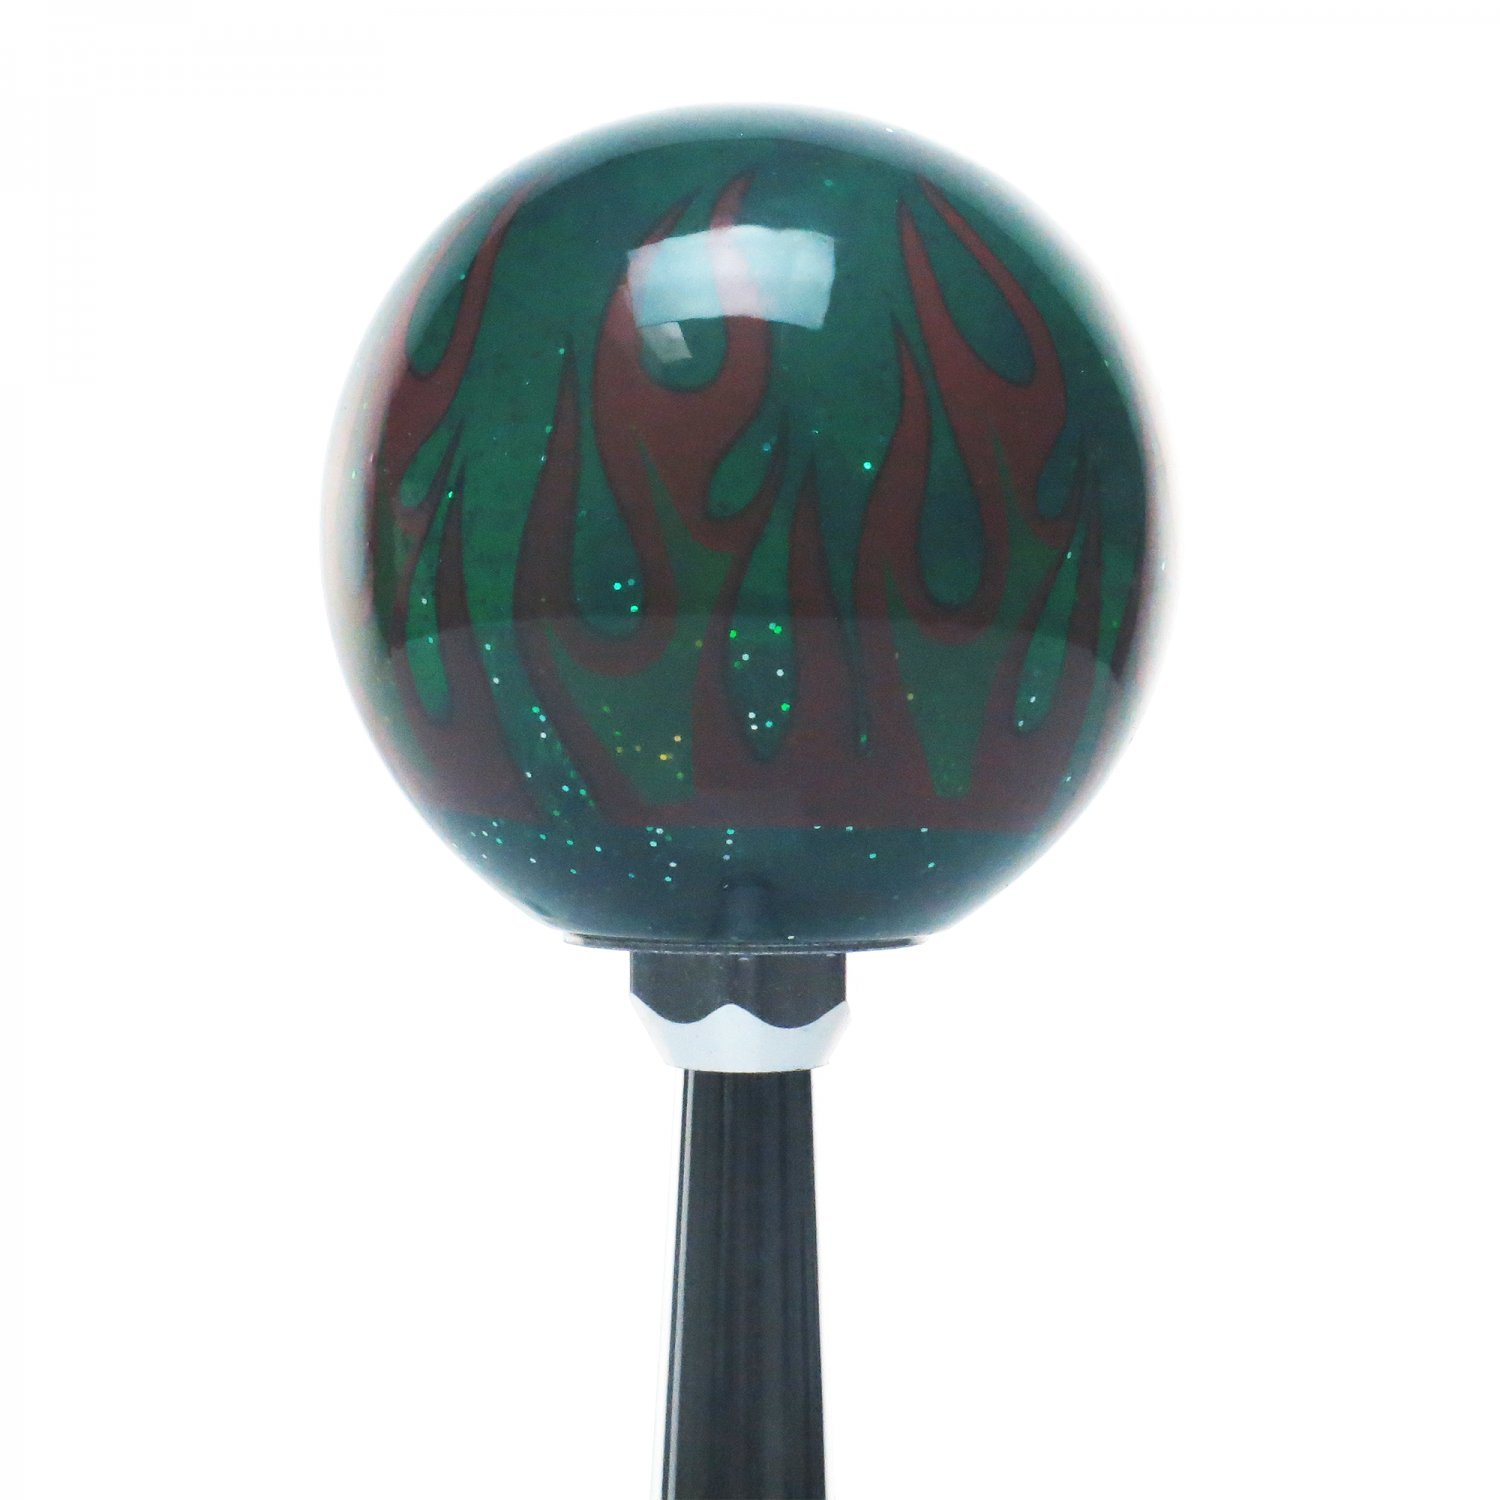 American Shifter 262914 Green Flame Metal Flake Shift Knob with M16 x 1.5 Insert Blue Flower - Daisy